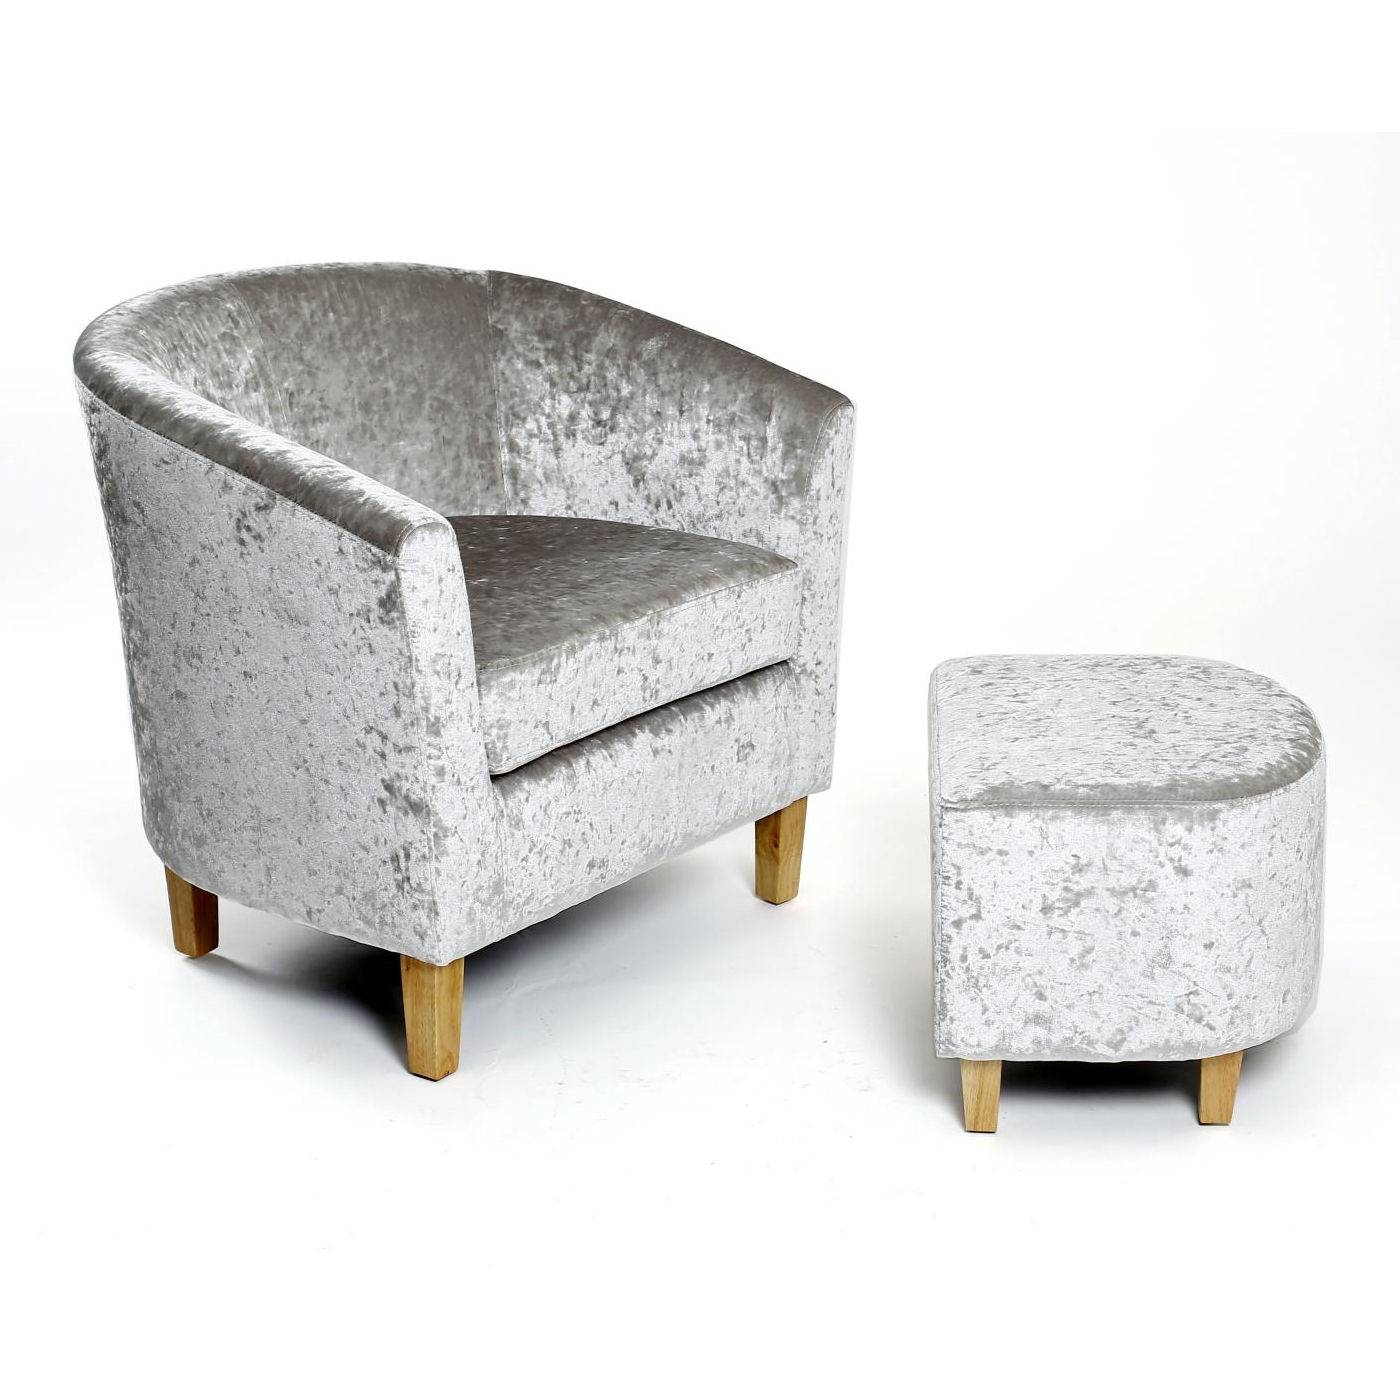 Sandringham Crushed Velvet Tub Chair And Footstool – Next Day with Velvet Footstool (Image 29 of 30)